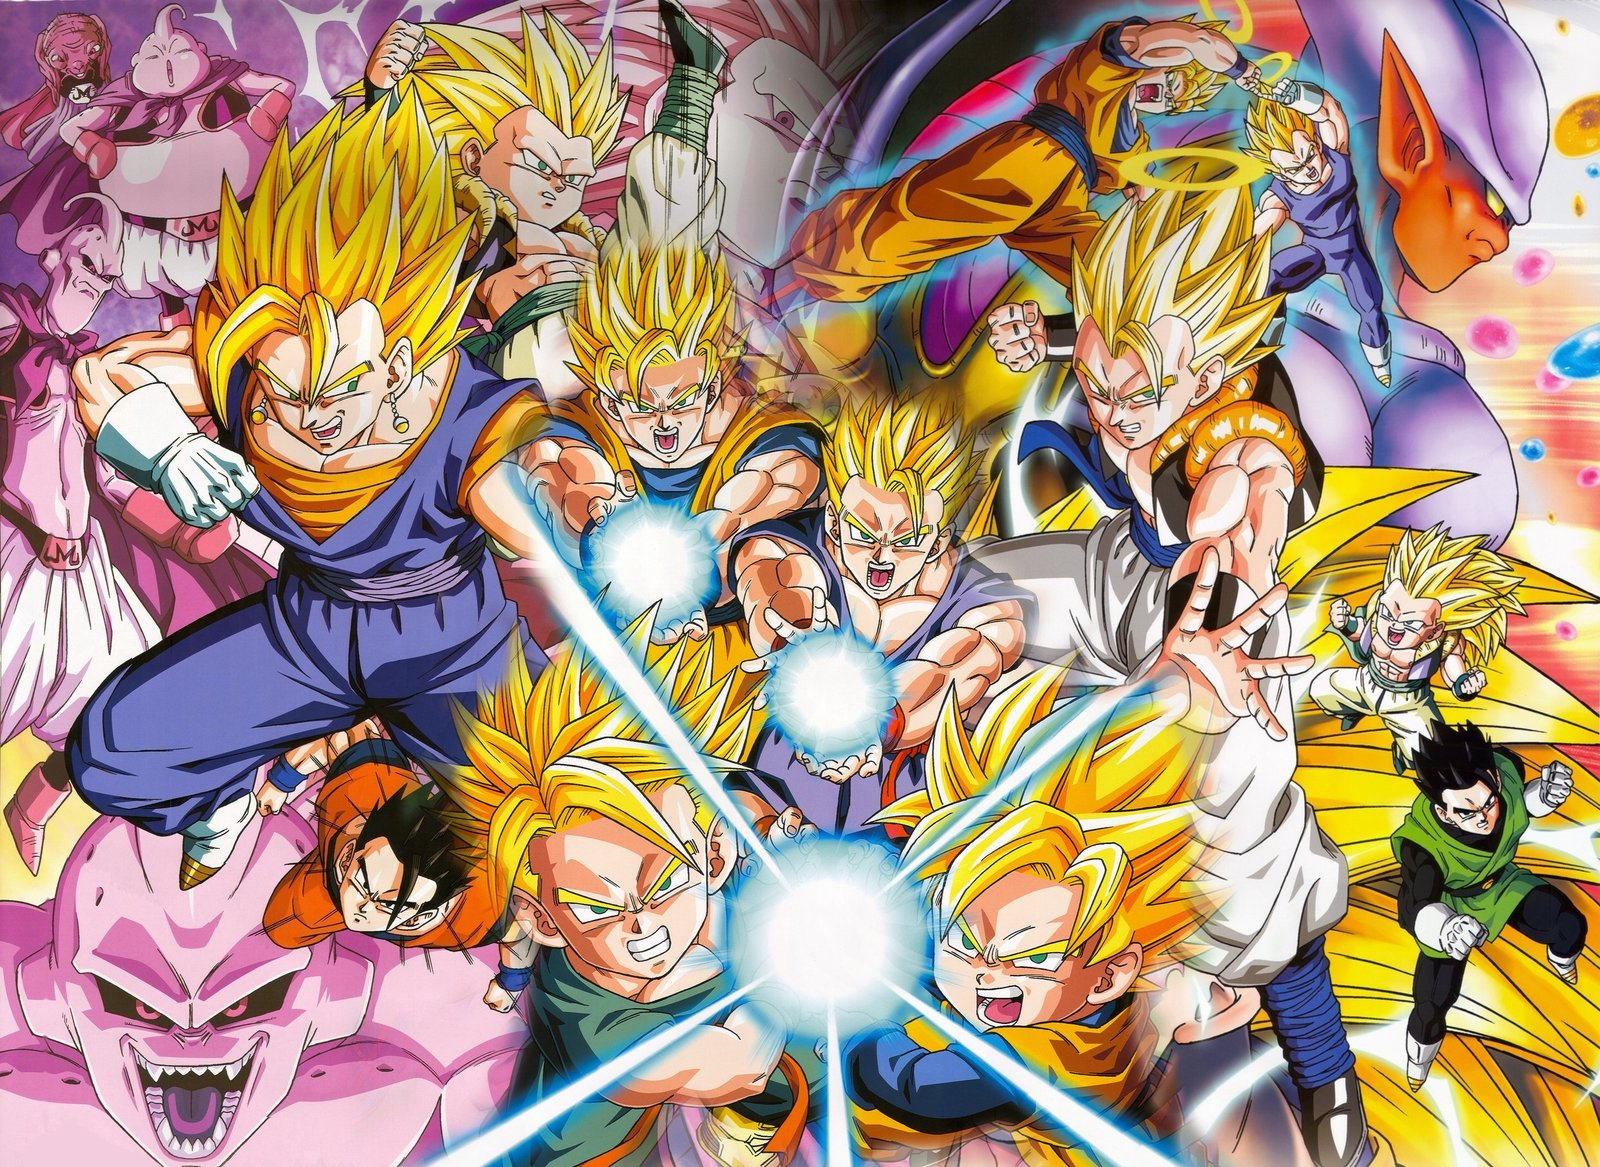 Dragon Ball Z Images Goku Hd Fond D Ecran And Background Photos